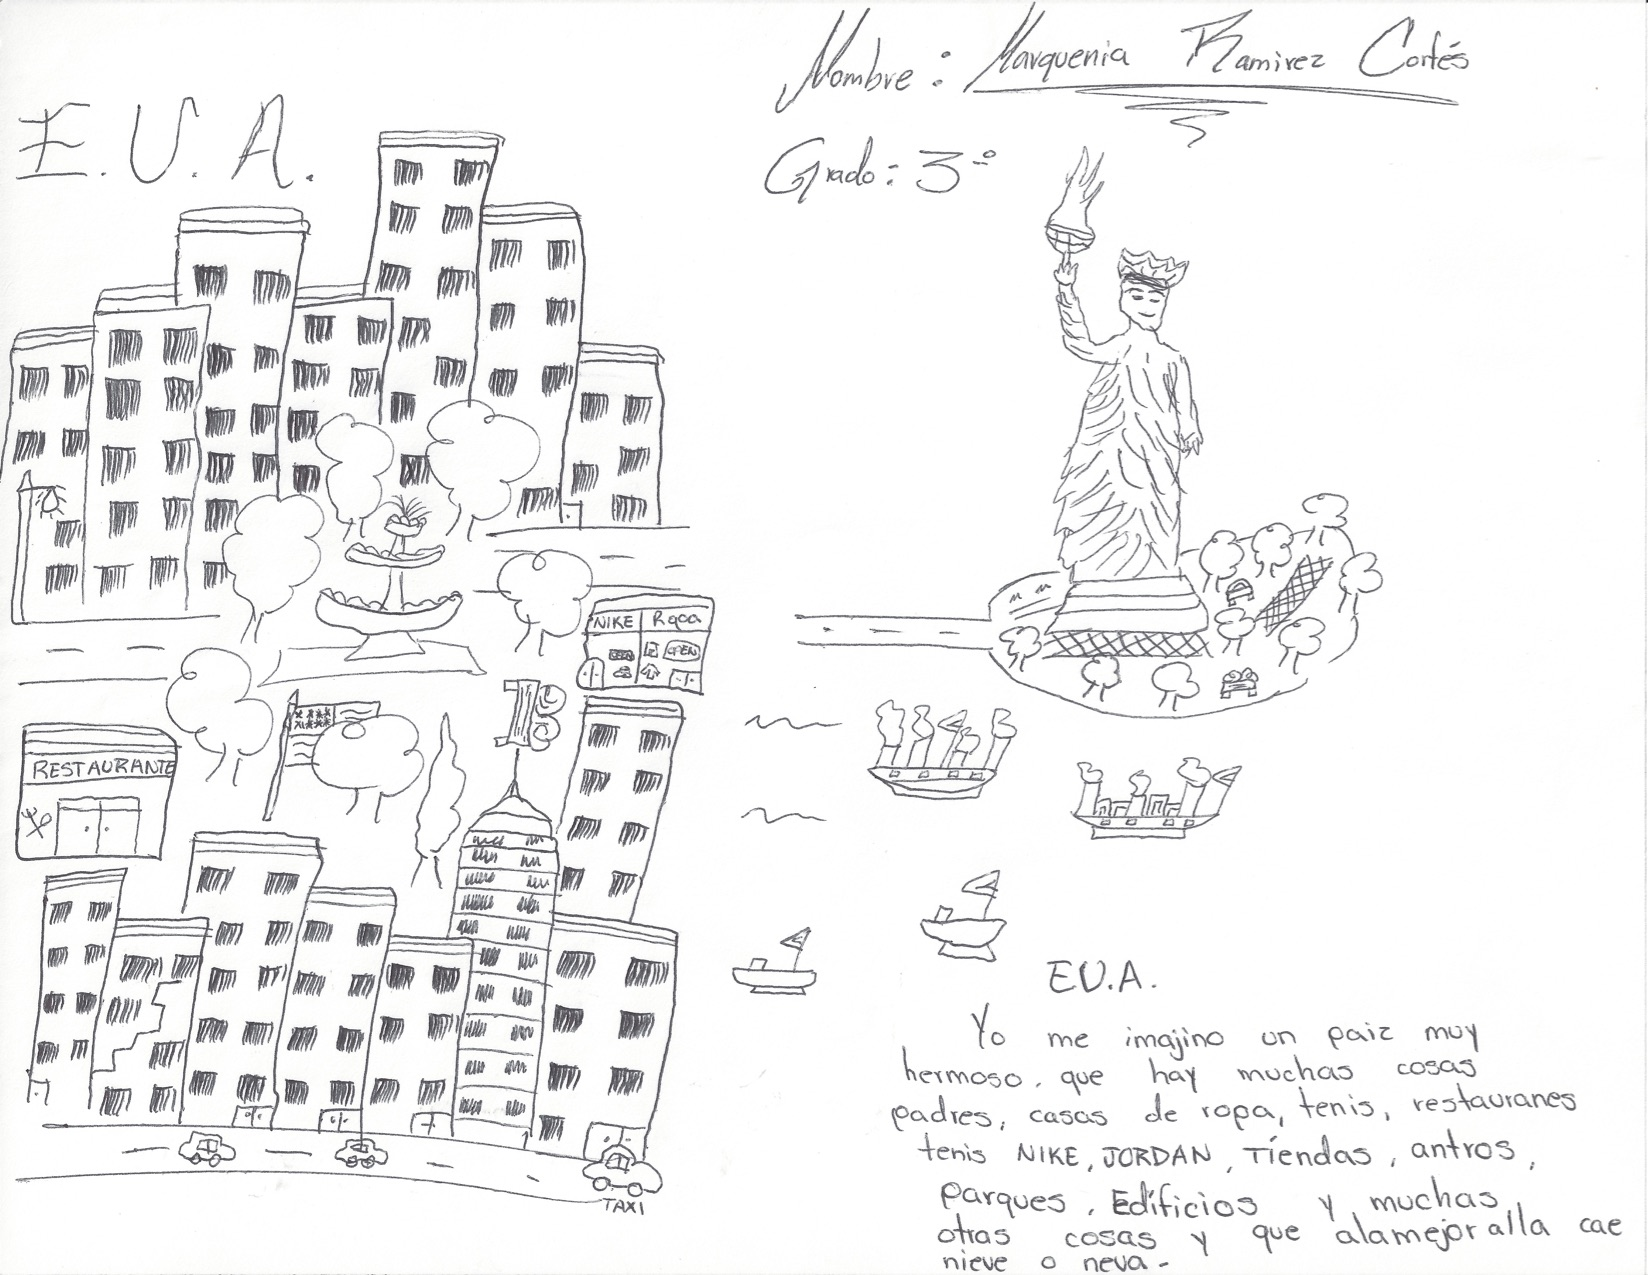 A drawing by a child of what she imagines New York City to look like.